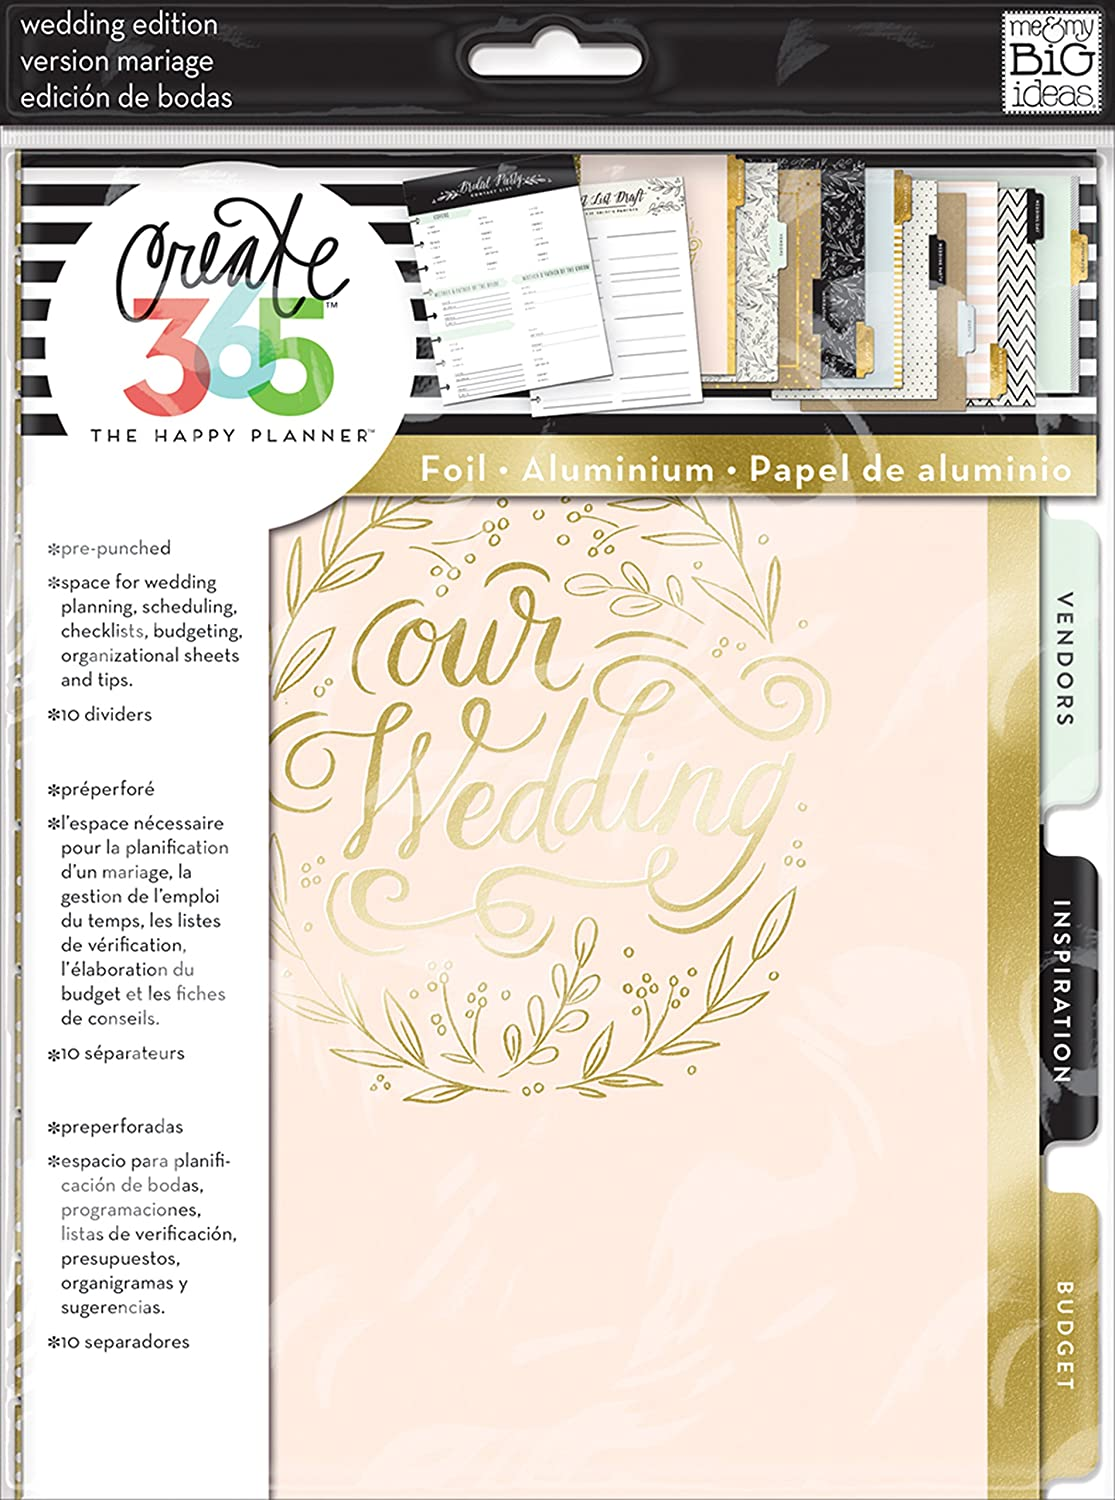 me & my BIG ideas Wedding Extension Pack - The Happy Planner Scrapbooking Supplies - Pre-Punched Pages - Wedding Planning, Scheduling, Budgeting - With Organizational Sheets & Tips - Classic Size